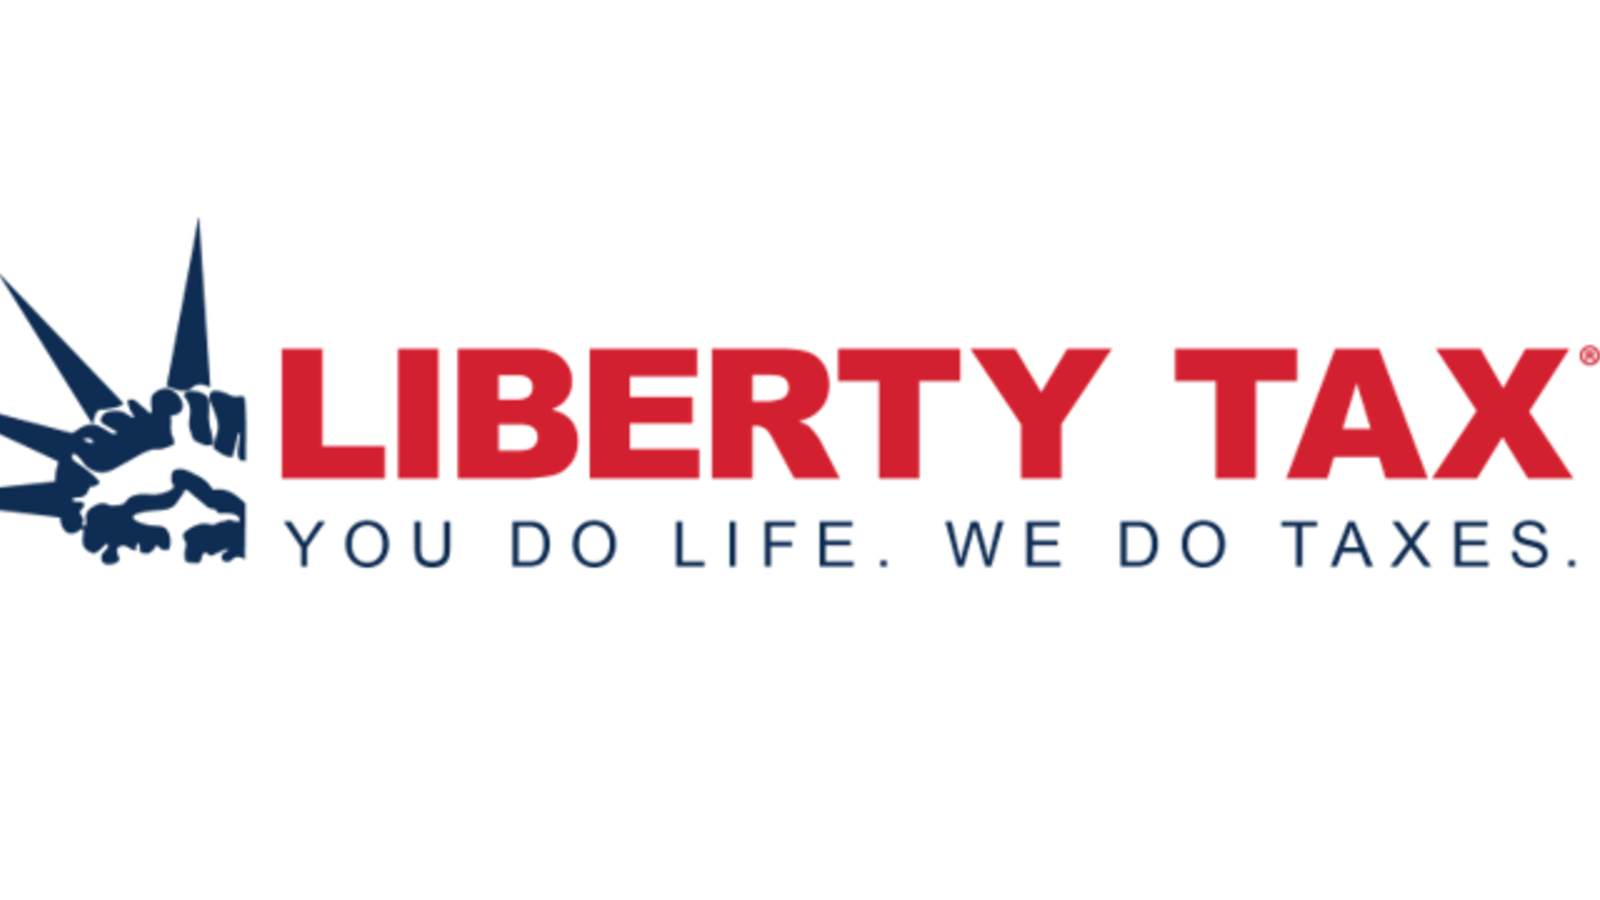 liberty tax press release on combat injured veterans and congress logo png congress loosing in india